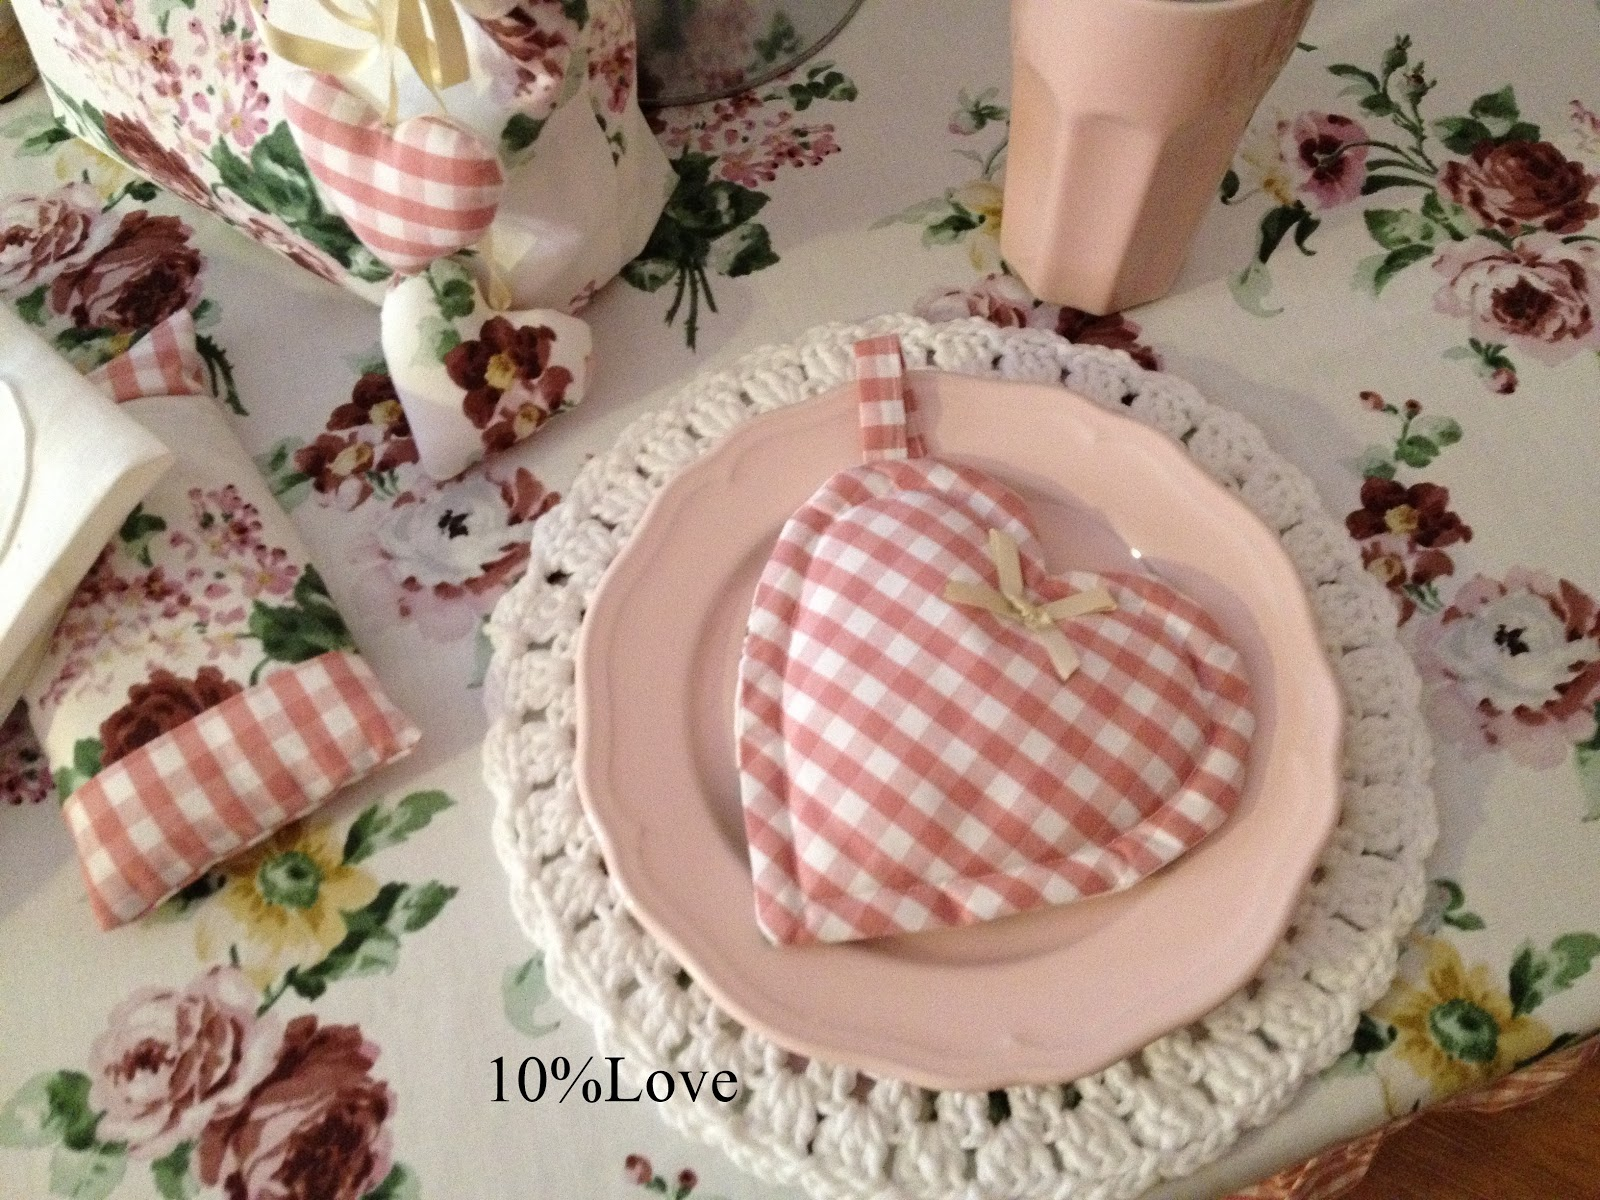 100 love shop tende cucina country for Tende cucina country